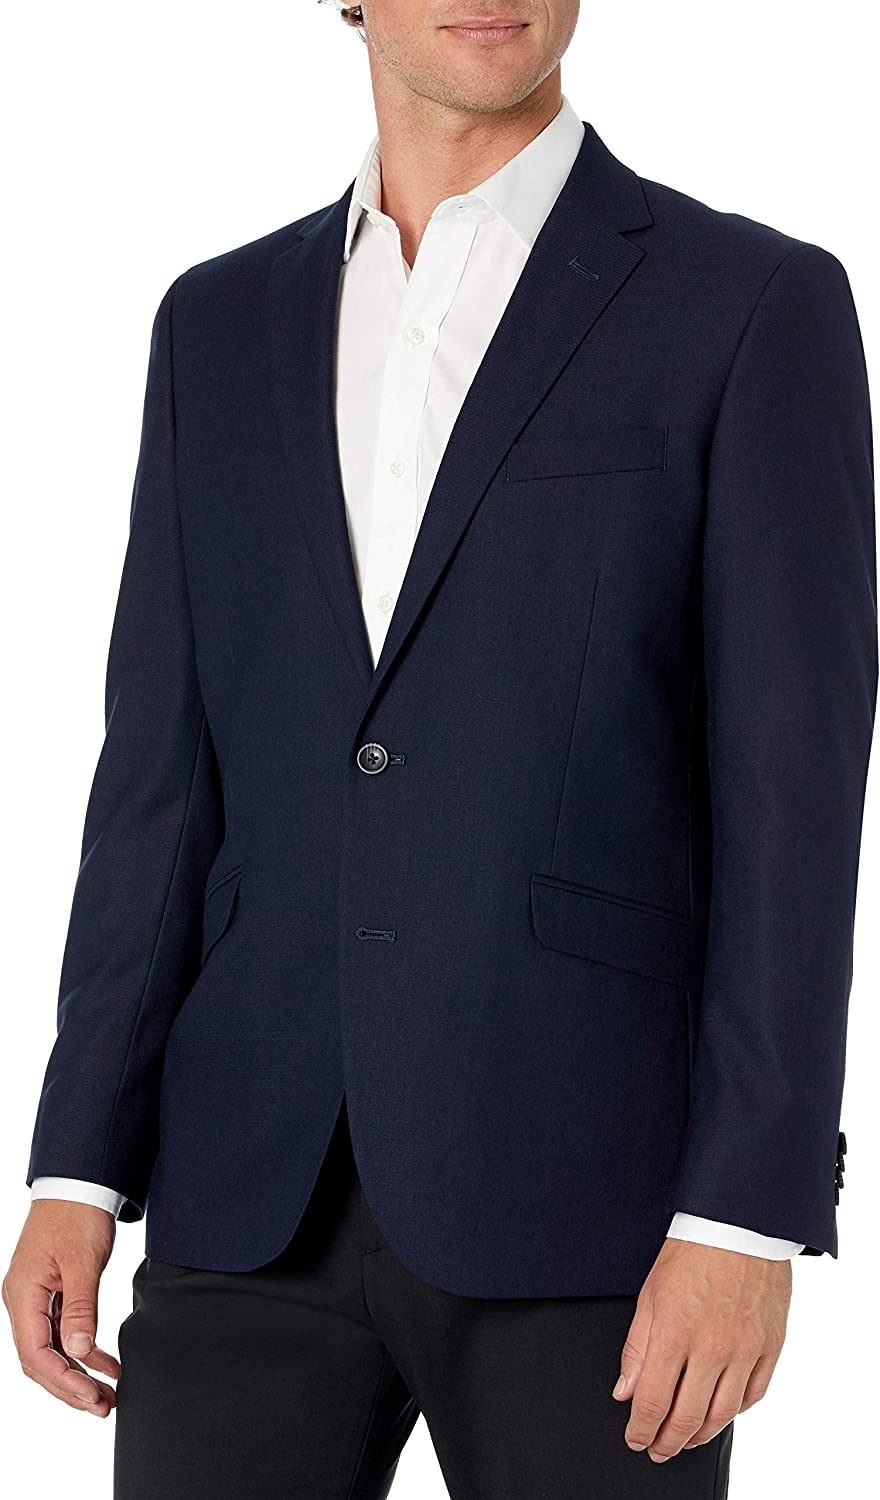 Kenneth Cole REACTION Men's Techni-Cole Stretch Slim Fit Suit Separate Blazer (Blazer, Pant, and Vest), Navy, 40 Long